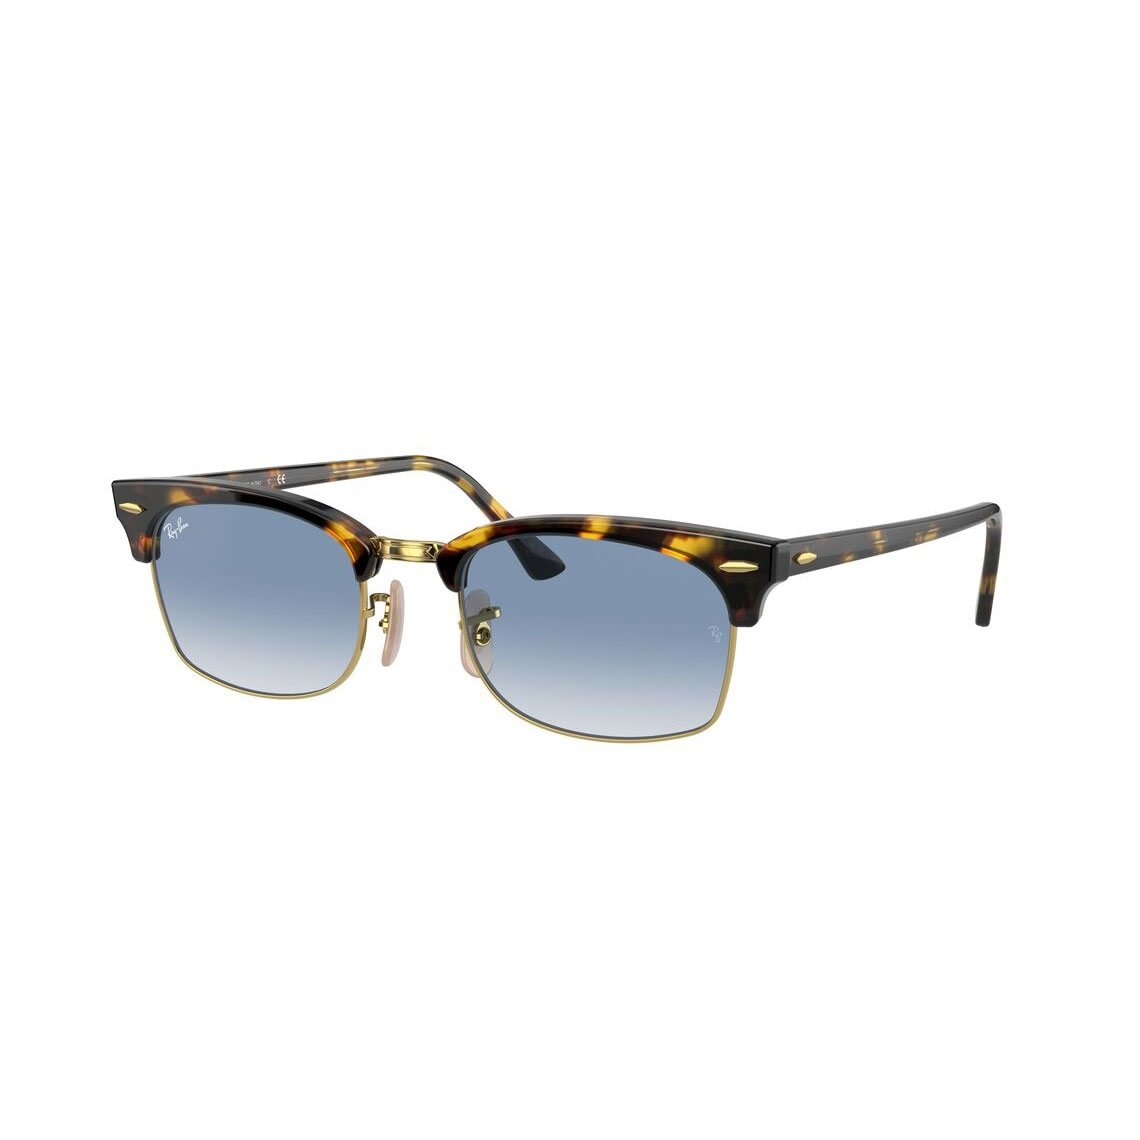 Ray-Ban Clubmaster Square RB3916 13353F 5221